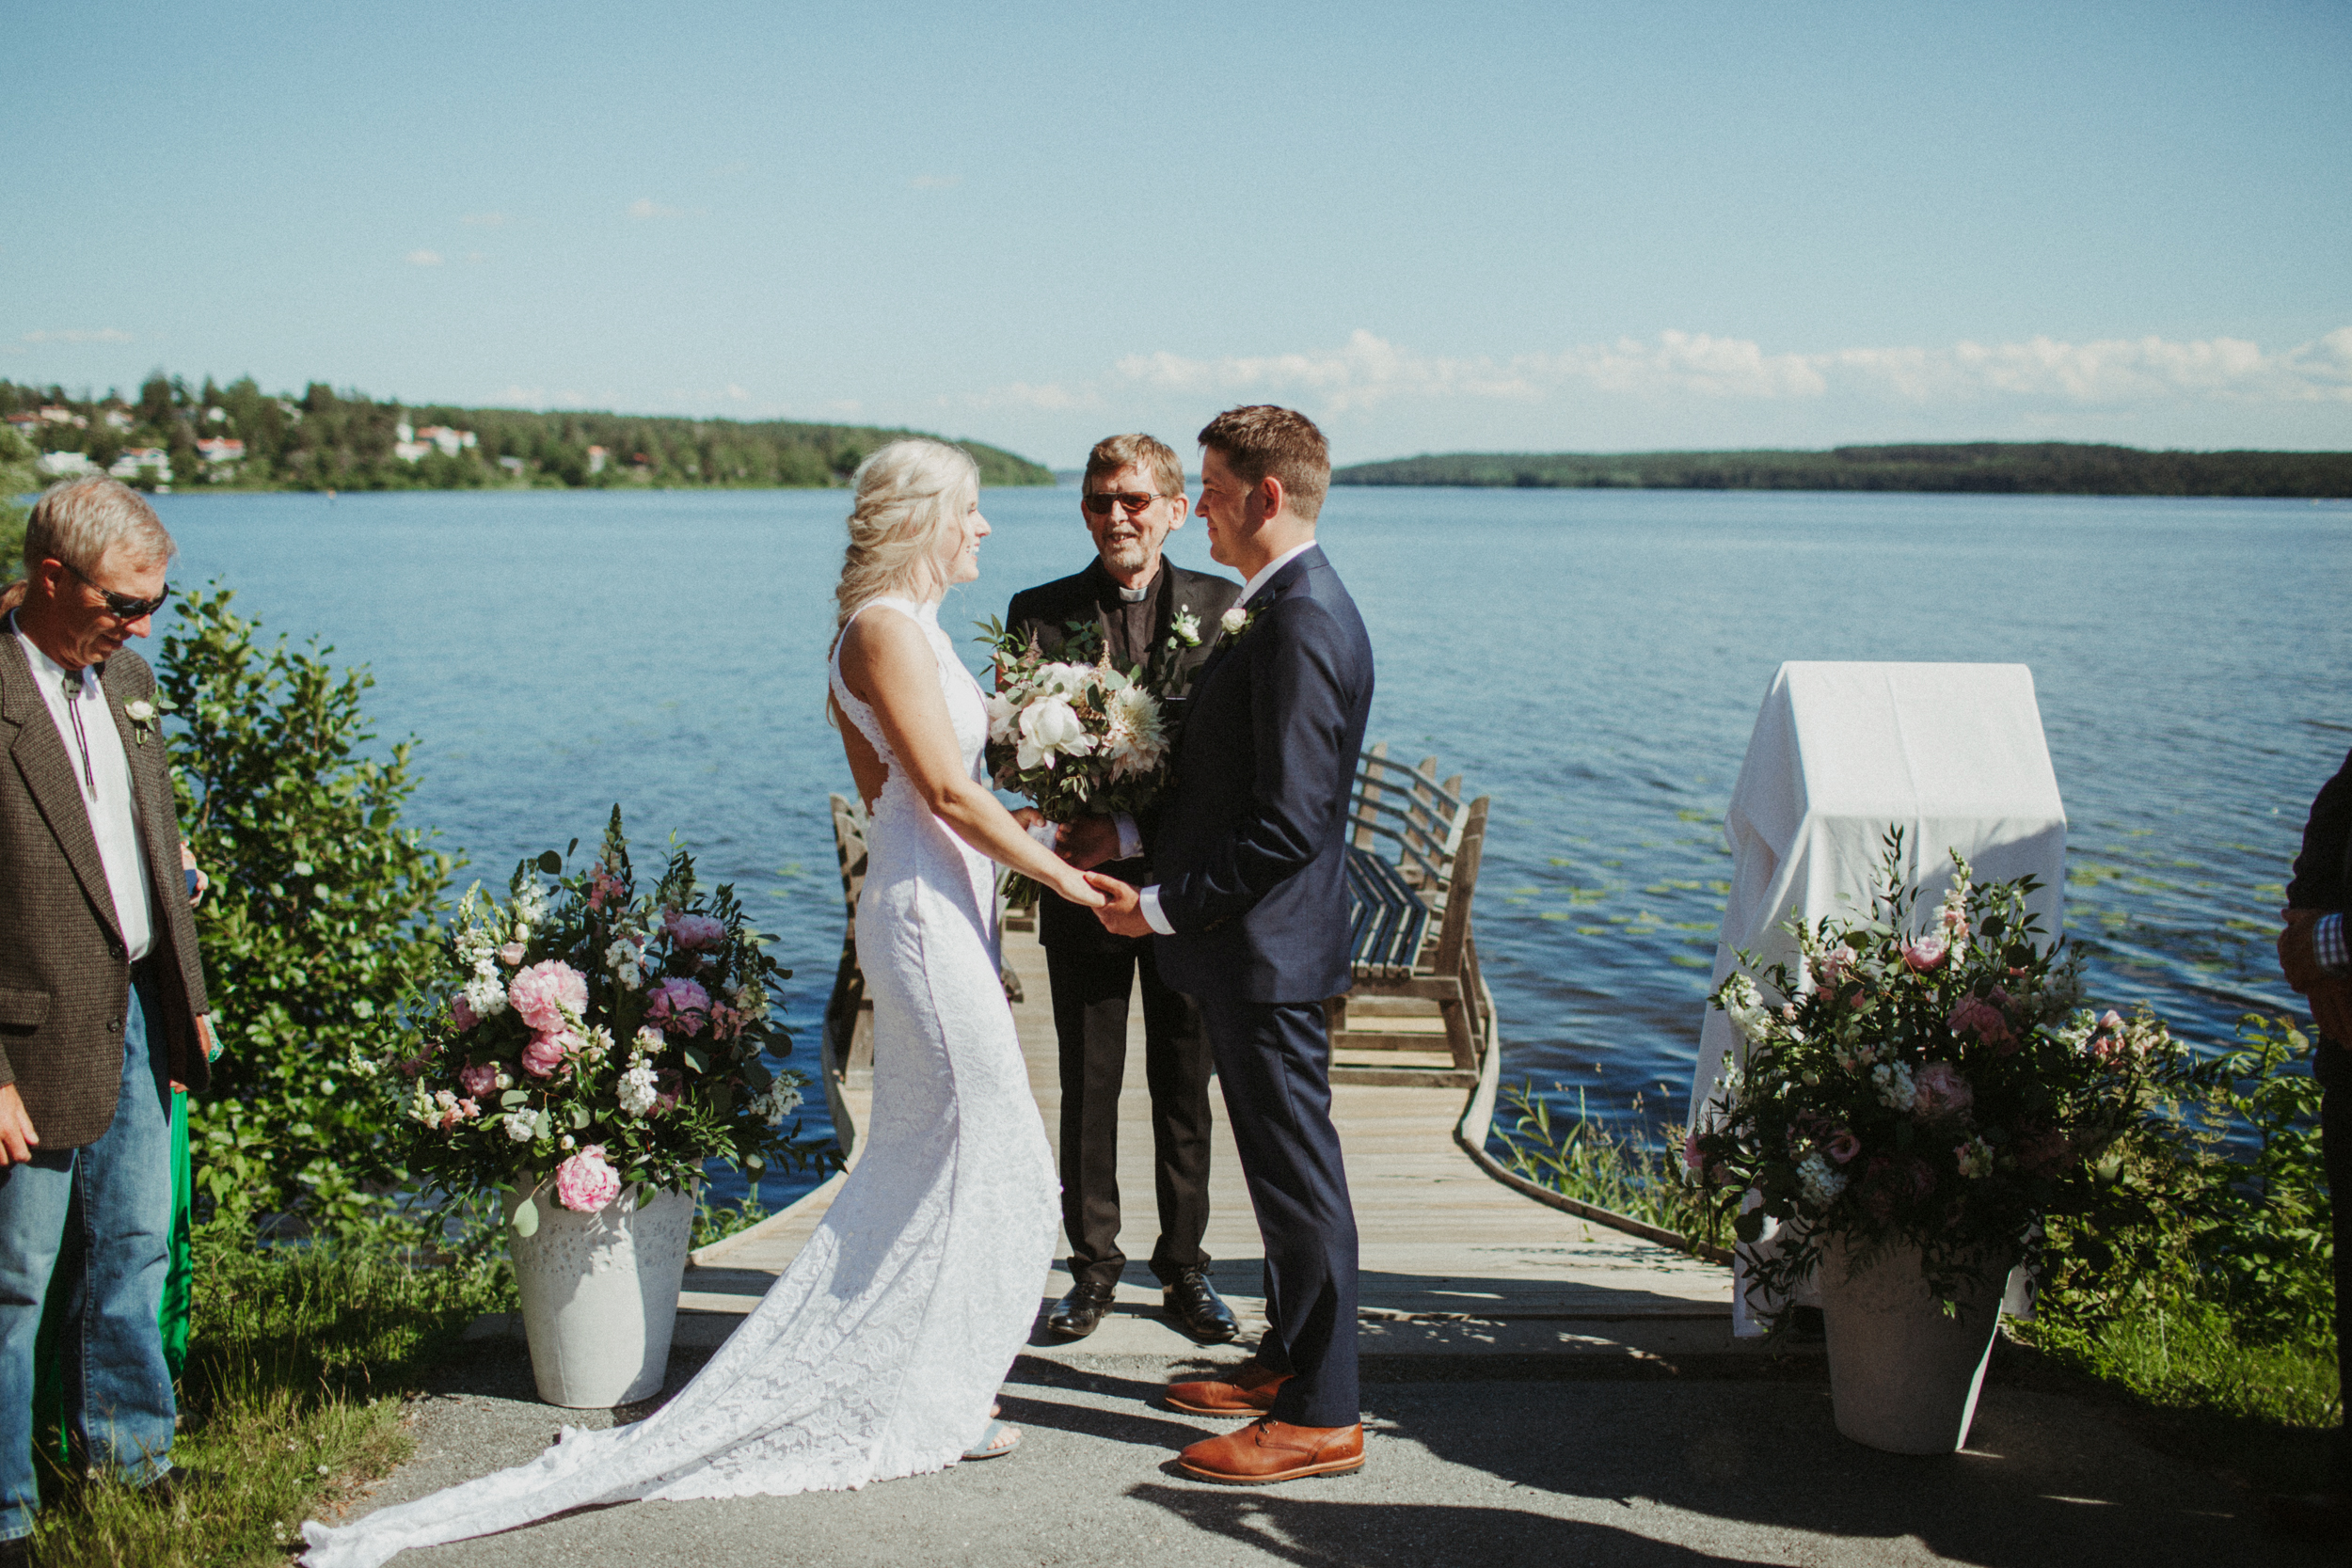 sigtuna-sweden-wedding_m_e-70.jpg